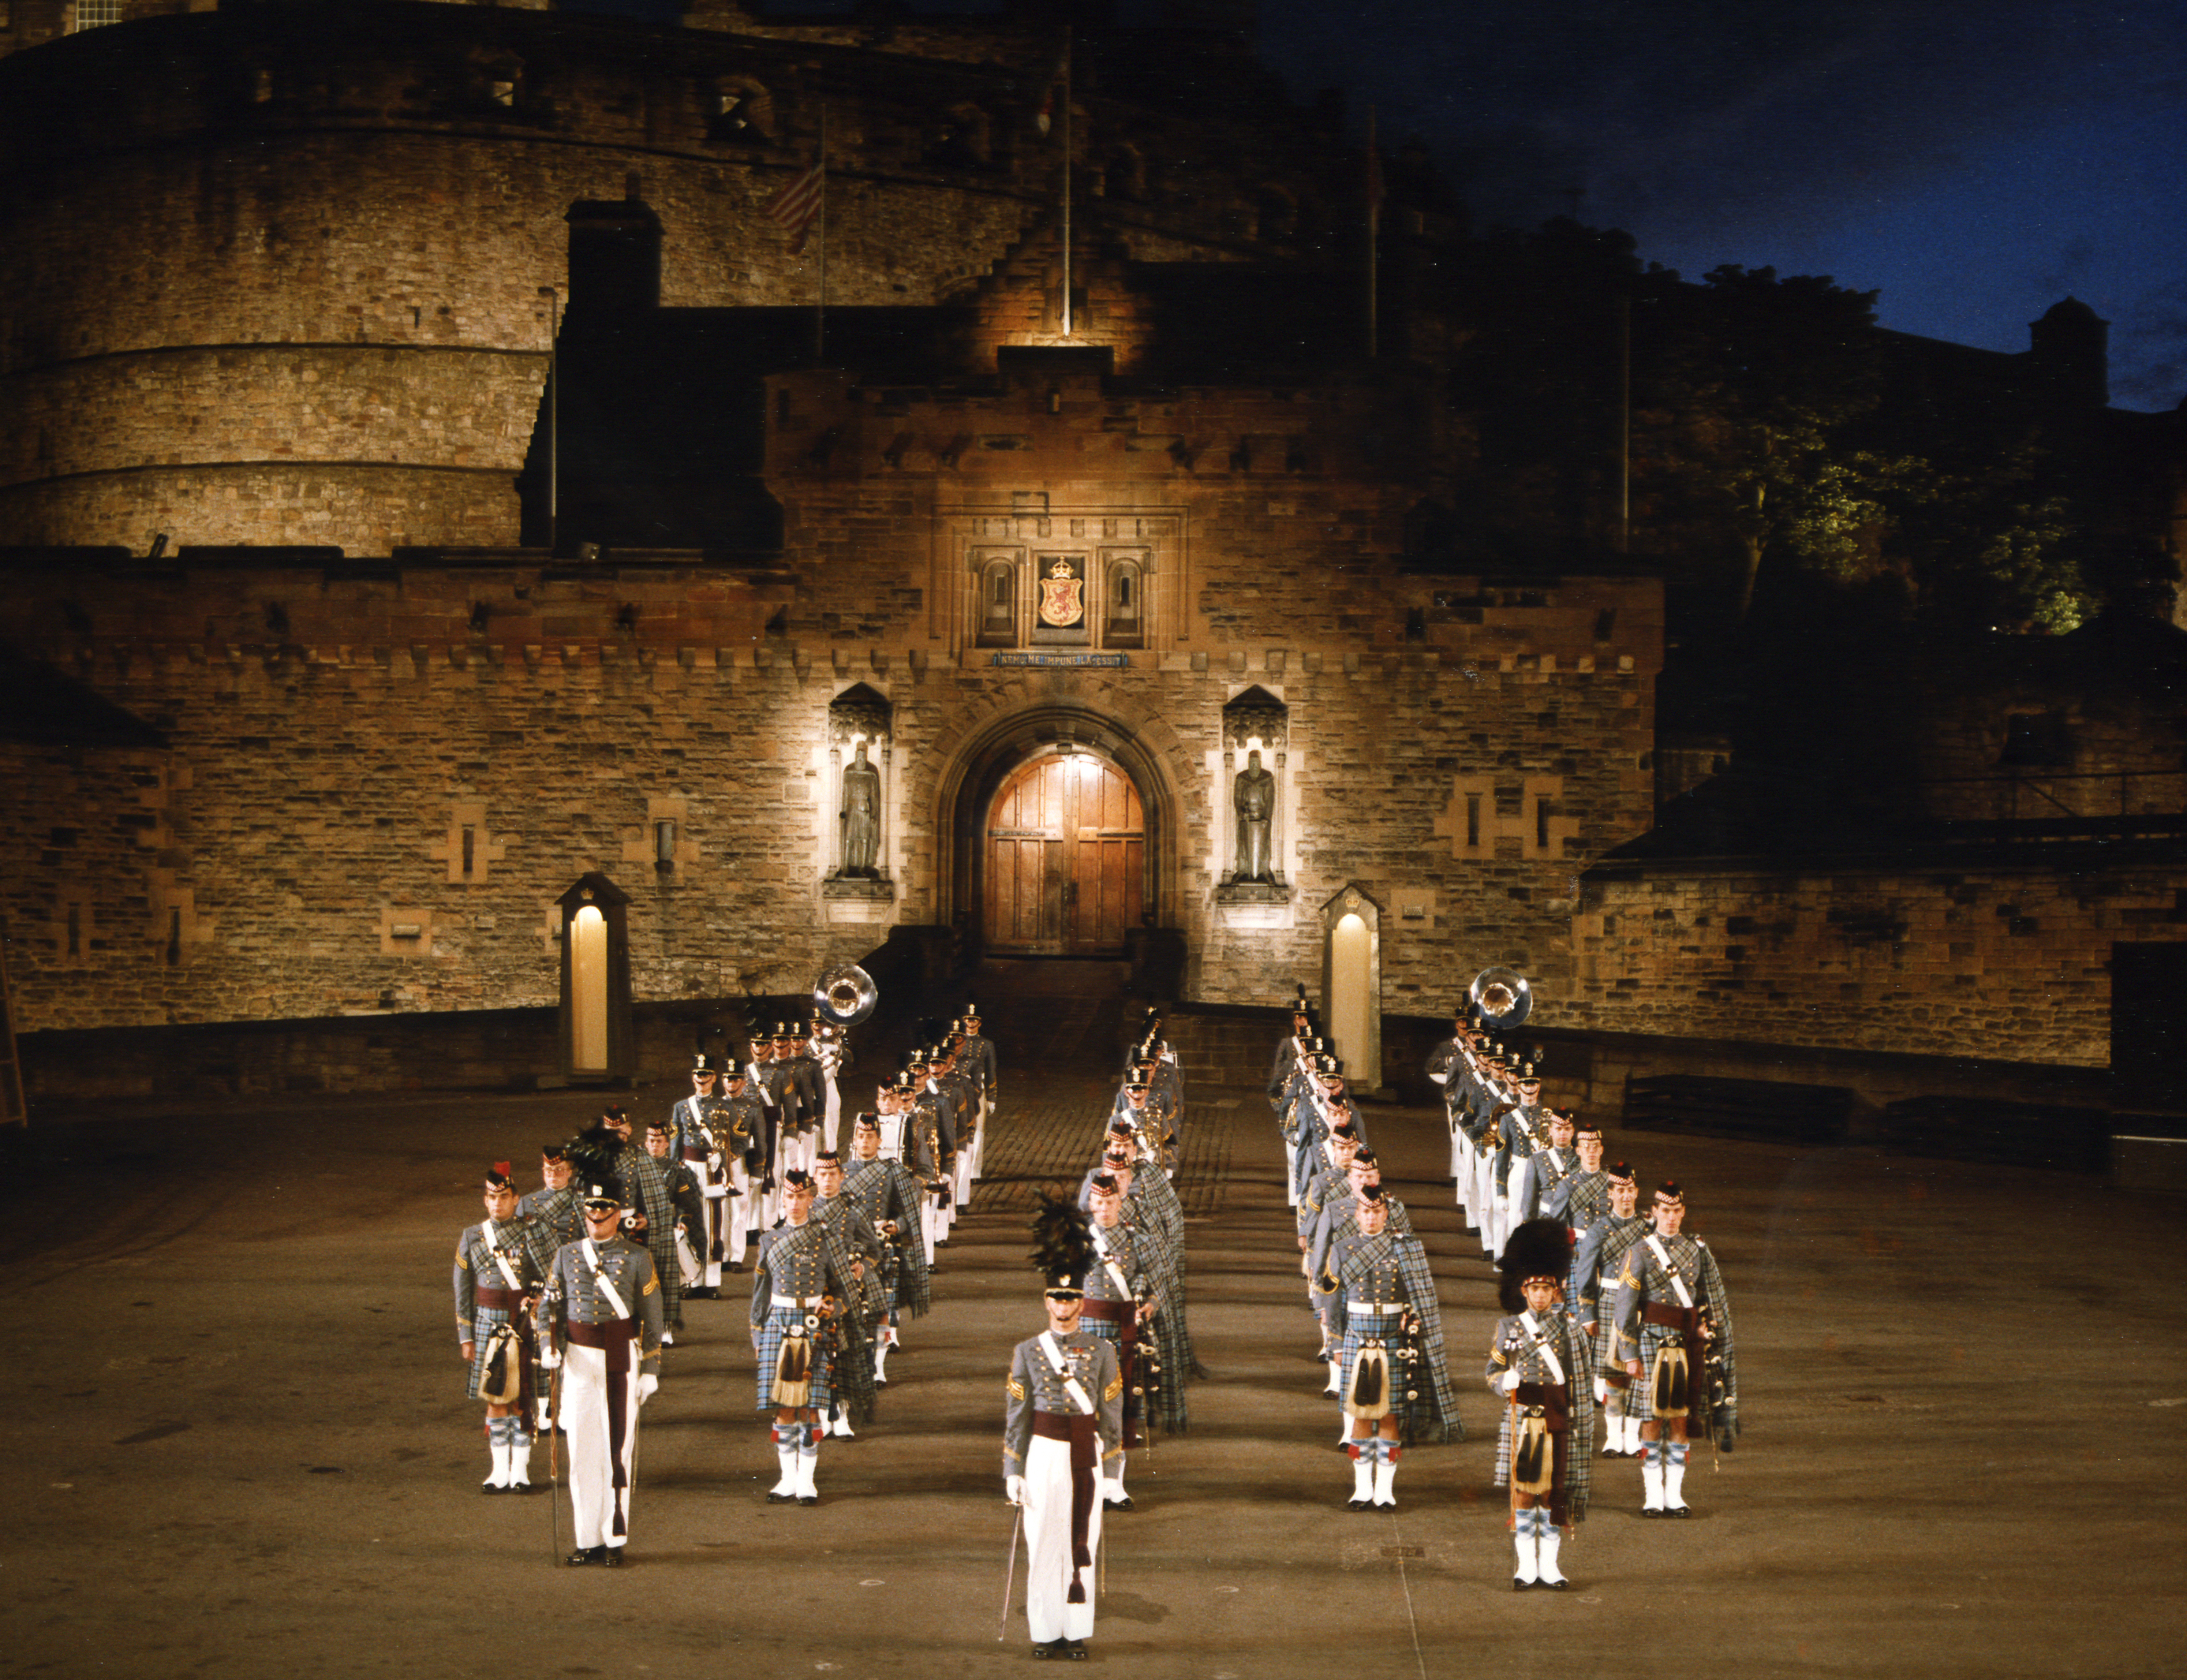 The Citadel Regimental Band and Pipes performing in Edinburgh, Scotland